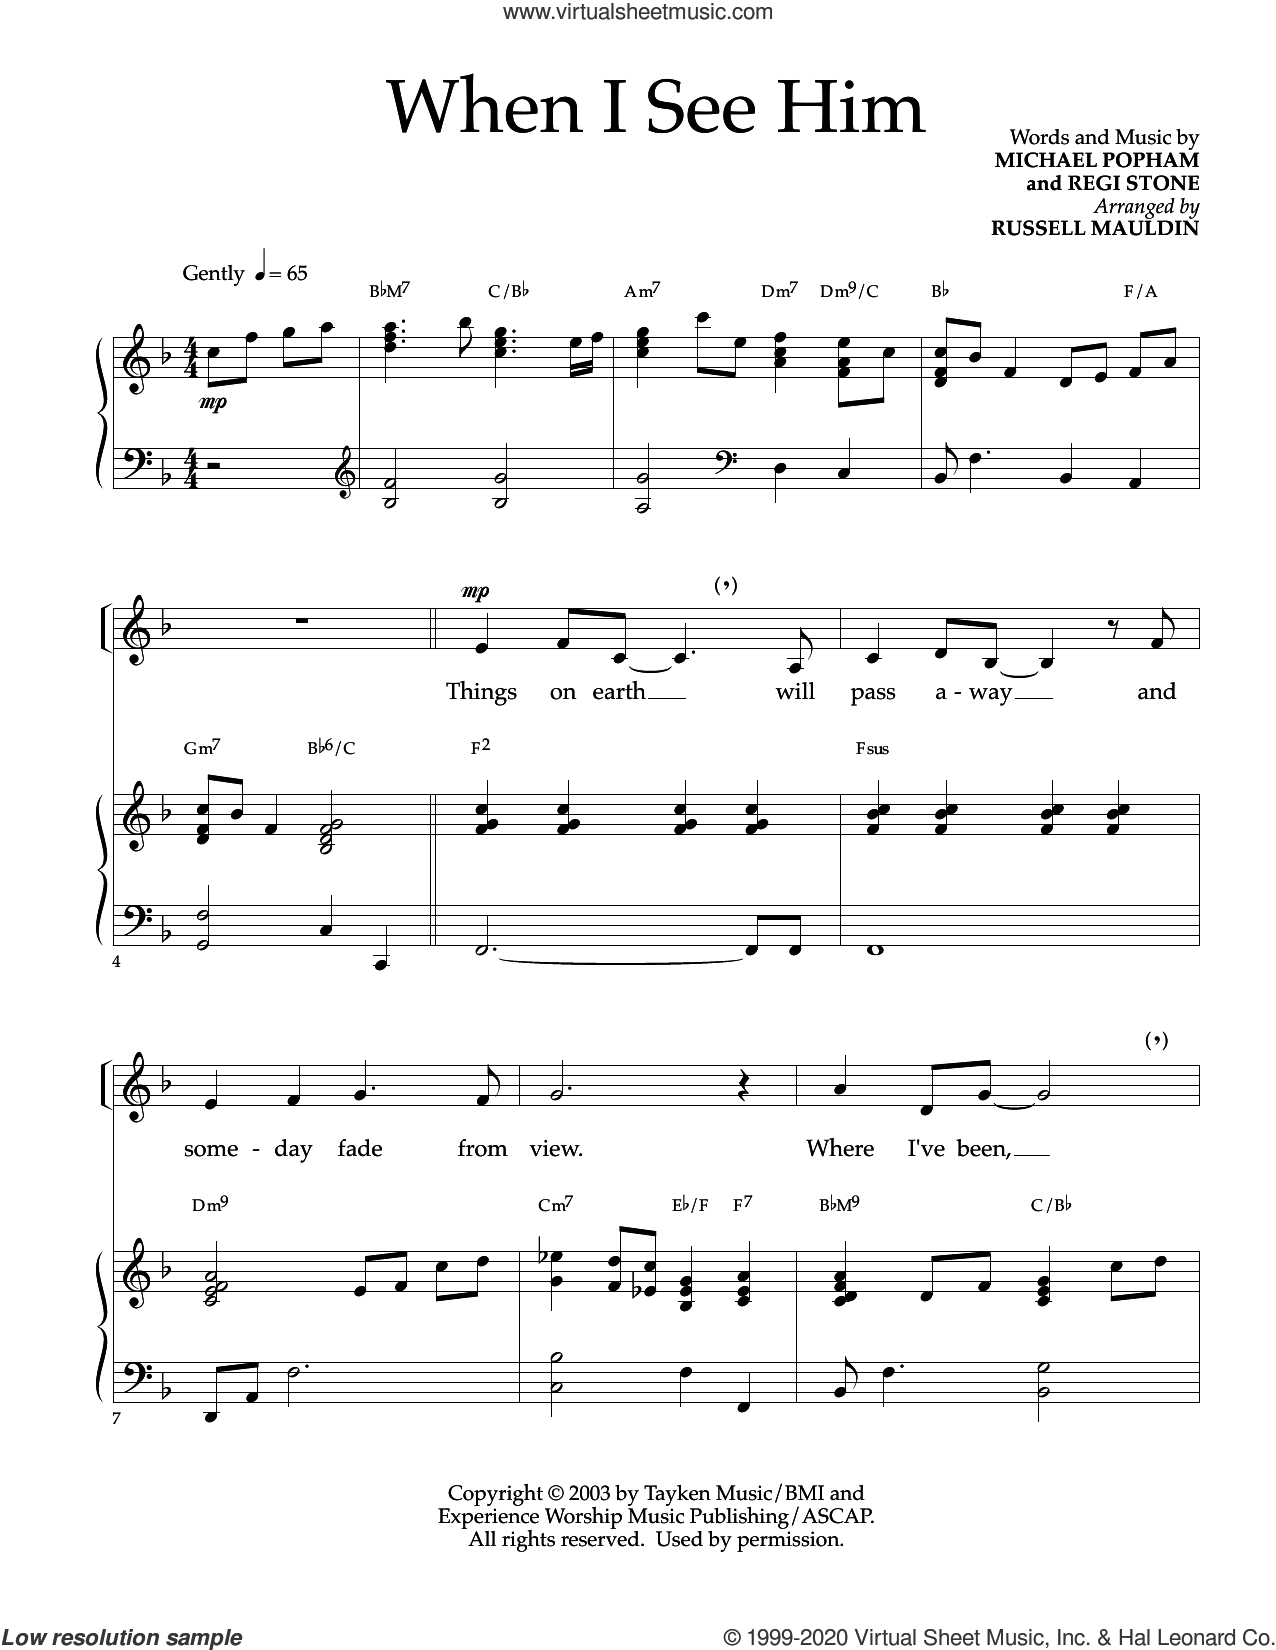 When I See Him (arr. Russell Mauldin) sheet music for voice and piano by Regi Stone, Russell Mauldin, Michael Popham and Michael Popham and Regi Stone, intermediate skill level